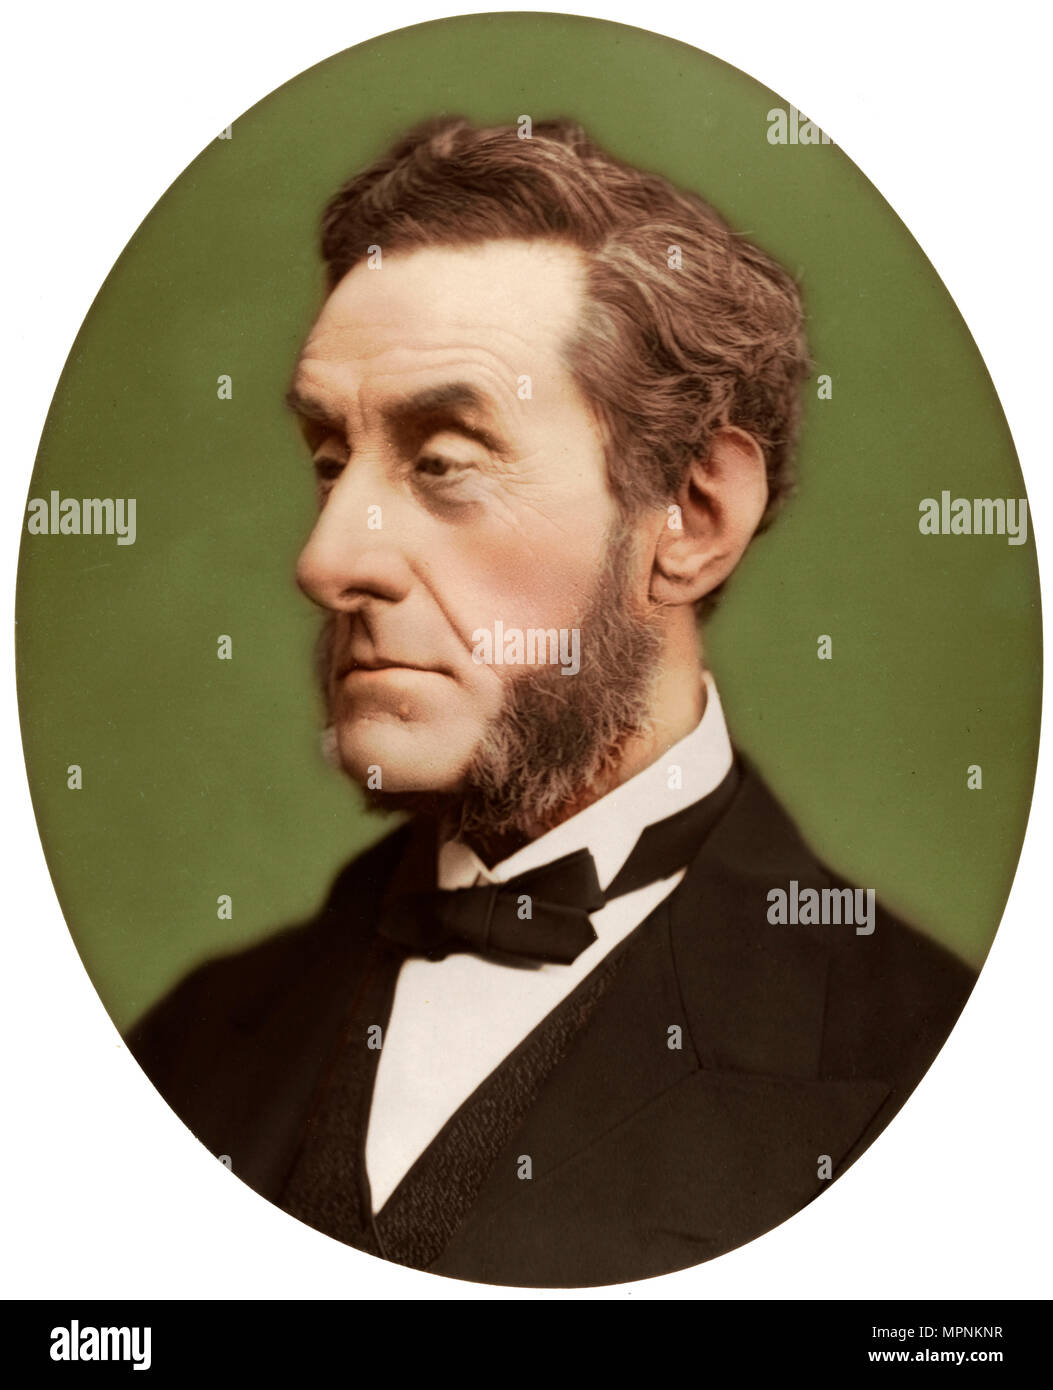 Anthony Ashley-Cooper, 7th Earl of Shaftesbury, British politician and philanthropist, 1876. Artist: Lock & Whitfield. - Stock Image